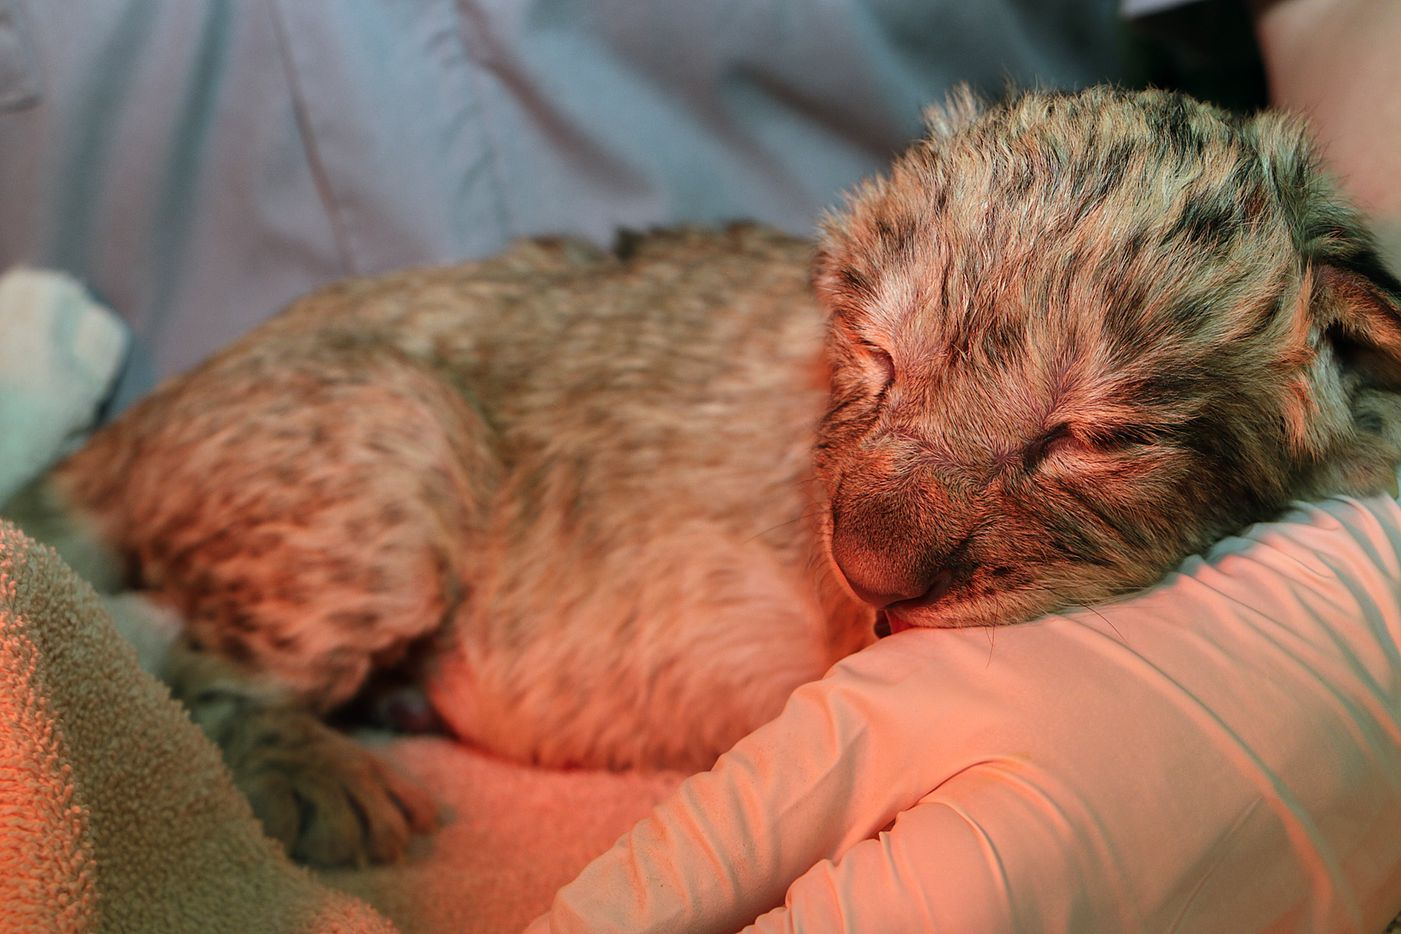 Lion cub Bahati Moja was born March 17 at the Dallas Zoo. She weighed at 2.8 pounds at birth.